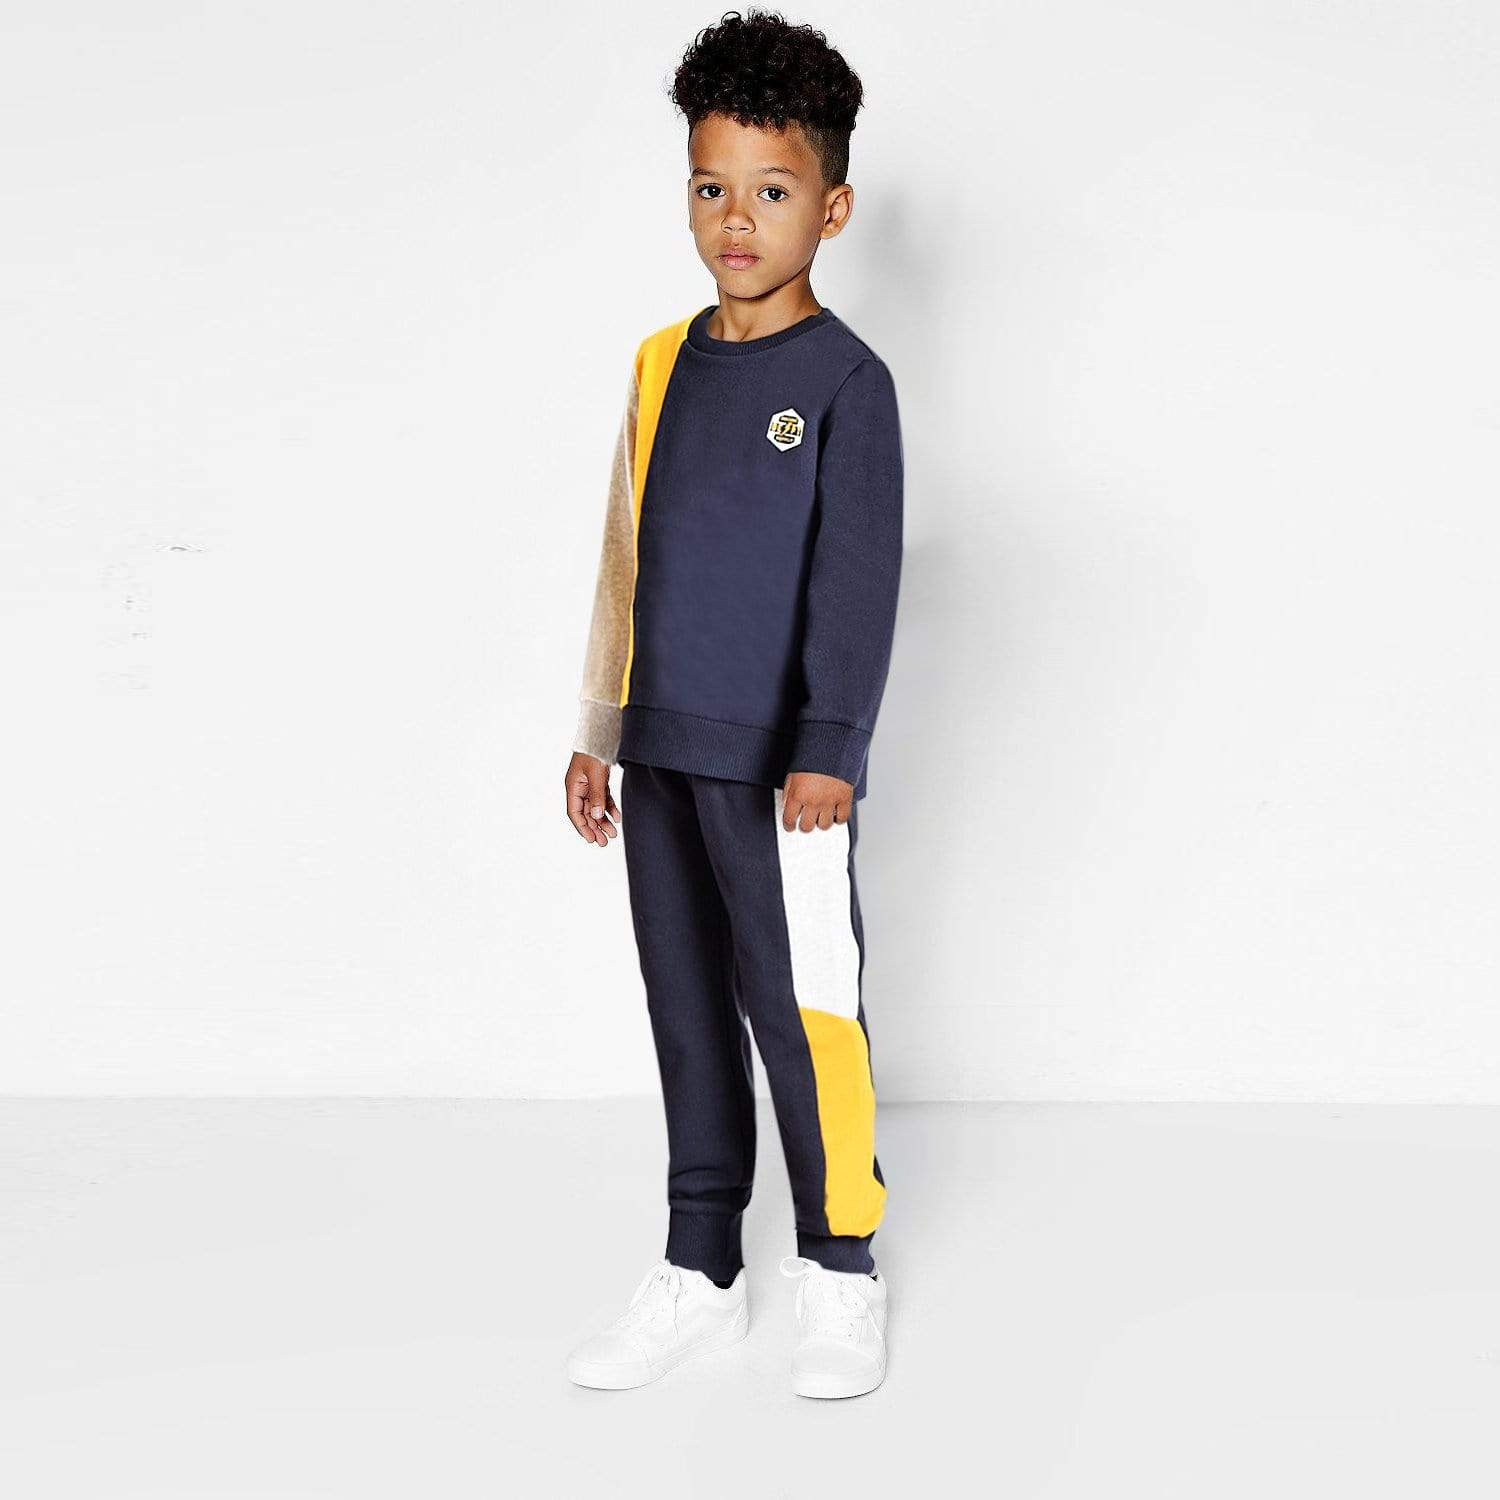 Stone Harbor Boys Track Suit Boy's Stone Harbor Dept Awesome Tracksuit